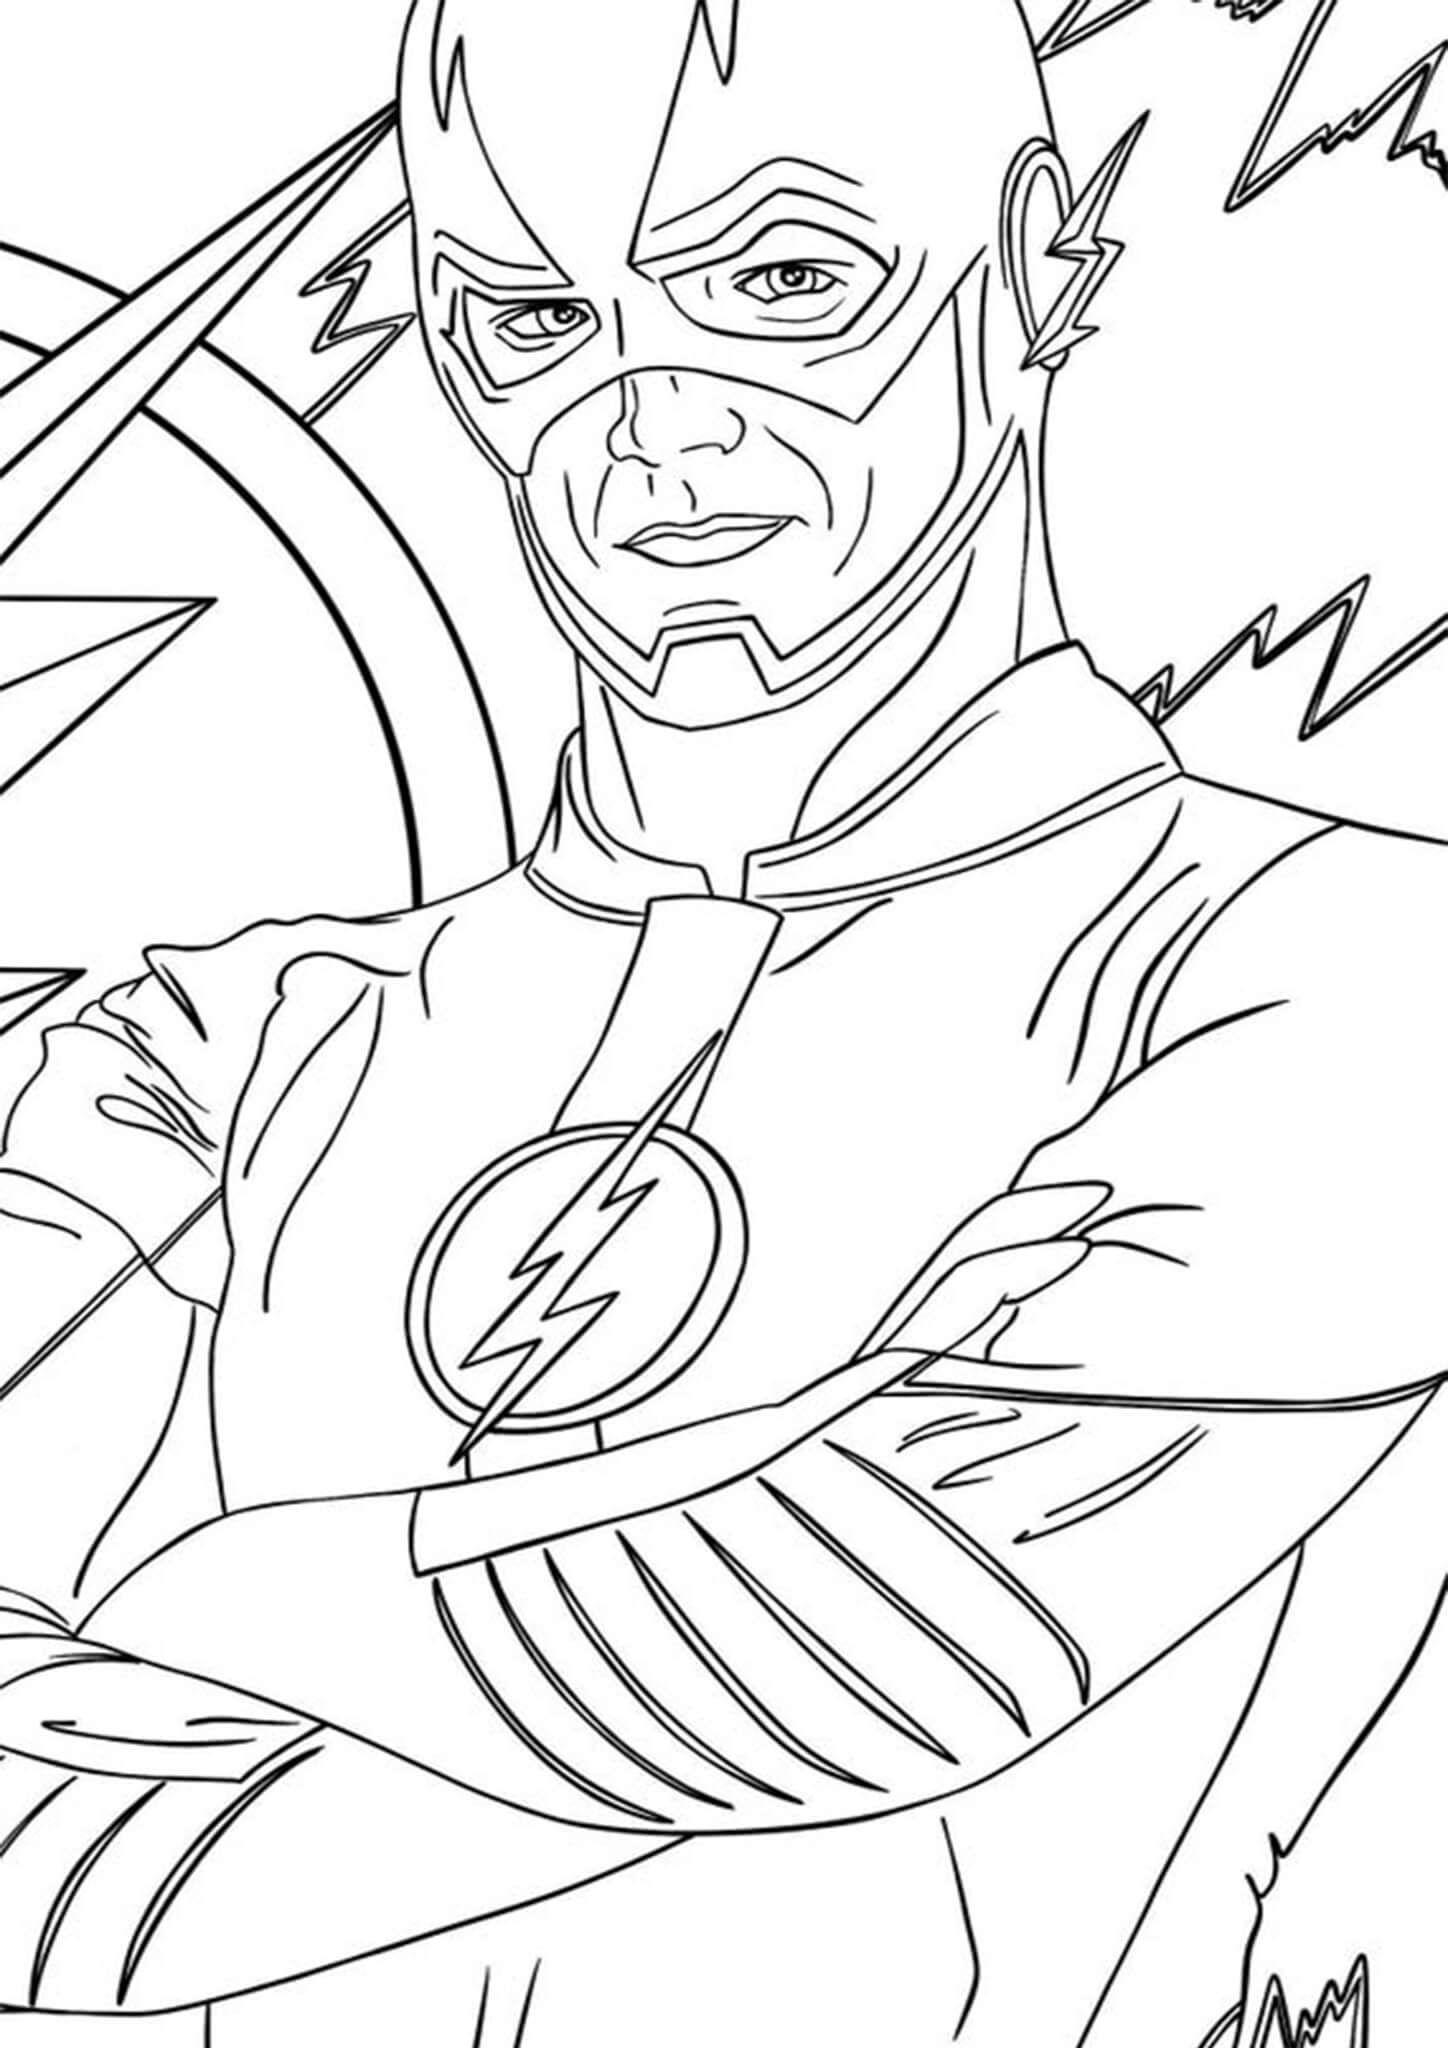 Free Easy To Print Flash Coloring Pages Superhero Coloring Pages Coloring Pages Superhero Coloring